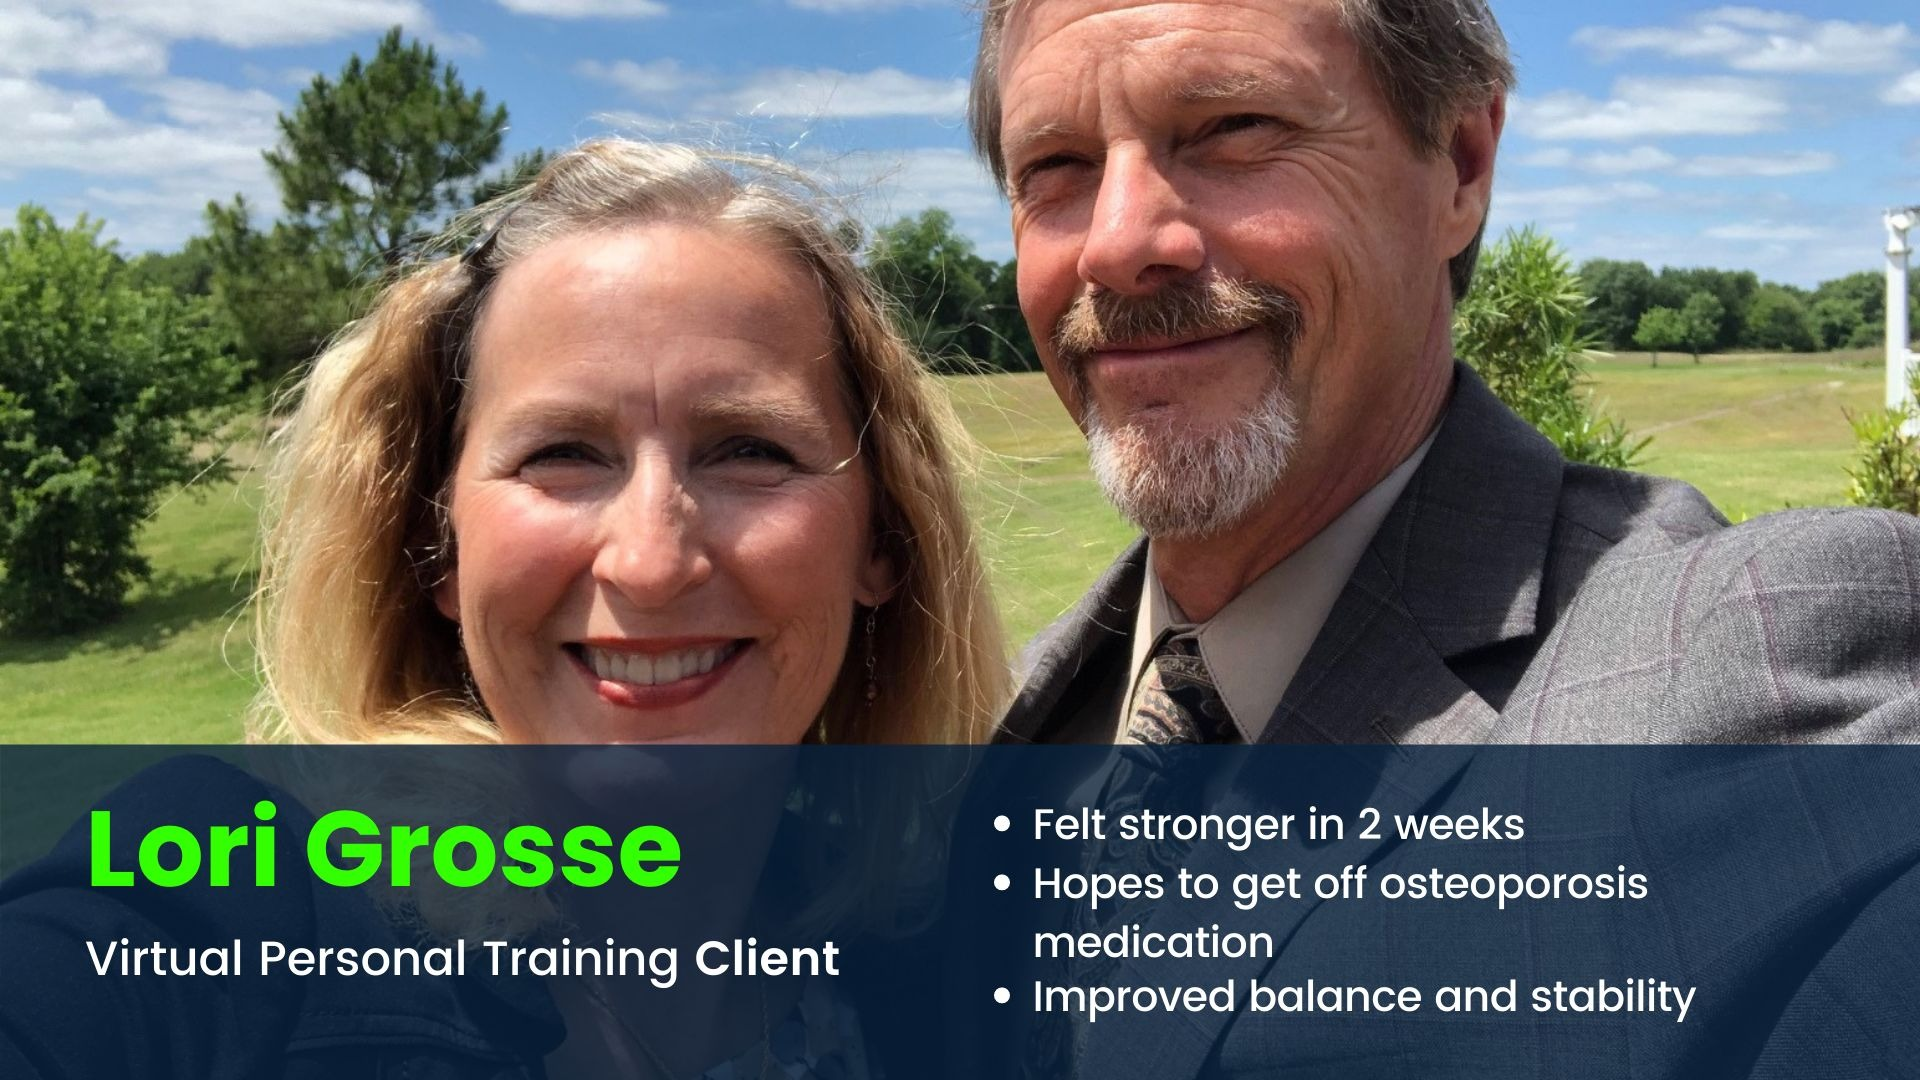 Virtual Personal training client smiling with husband and feels stronger